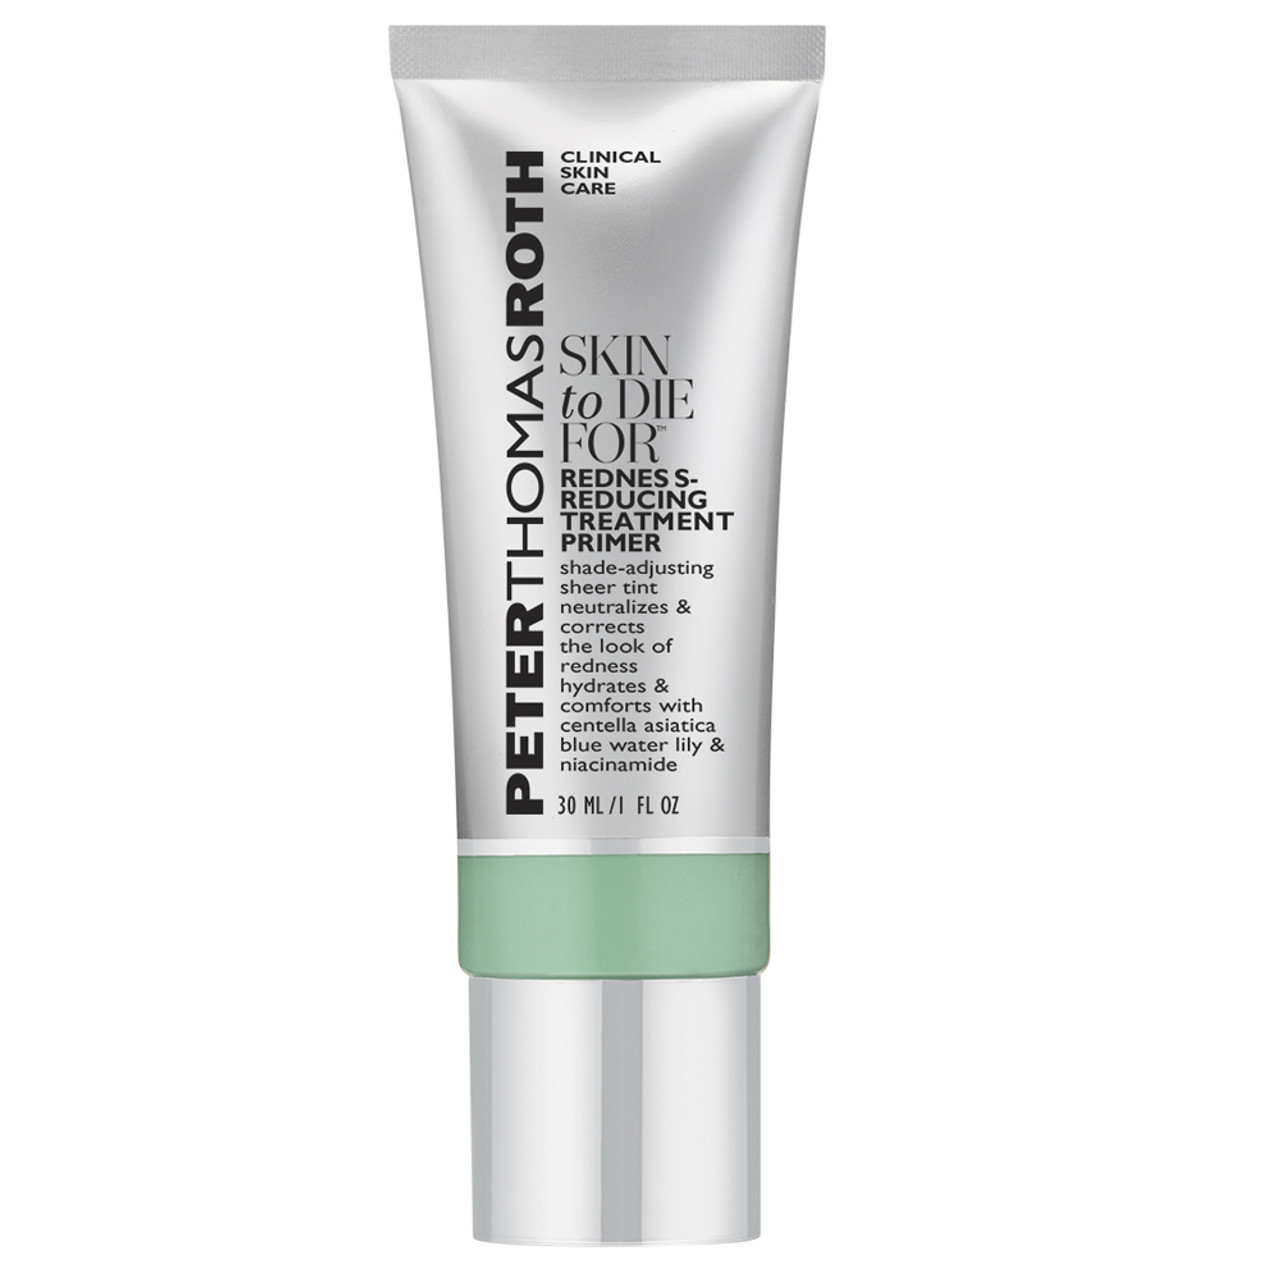 Peter Thomas Roth Skin To Die For Redness-Reducing Treatment Primer  BeautifiedYou.com